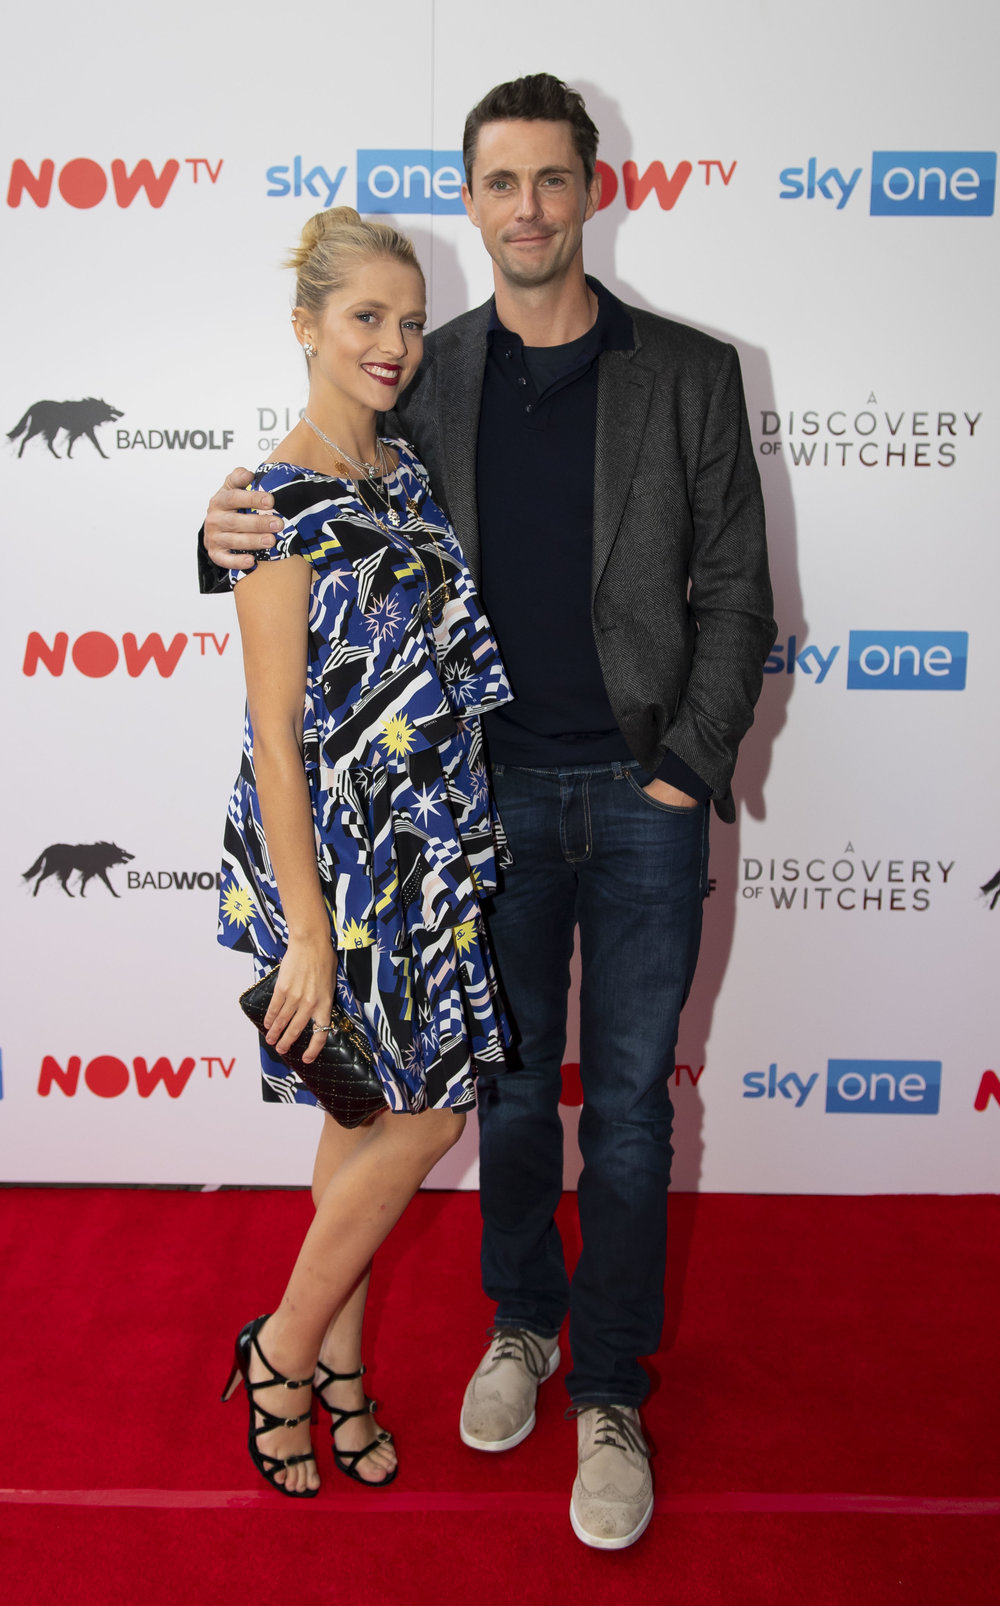 CARDIFF, WALES - SEPTEMBER 05: Teresa Palmer and Matthew Goode attend the UK Premiere of 'A Discovery Of Witches' at Cineworld on September 5, 2018 in Cardiff, Wales. (Photo by Matthew Horwood/Getty Images)